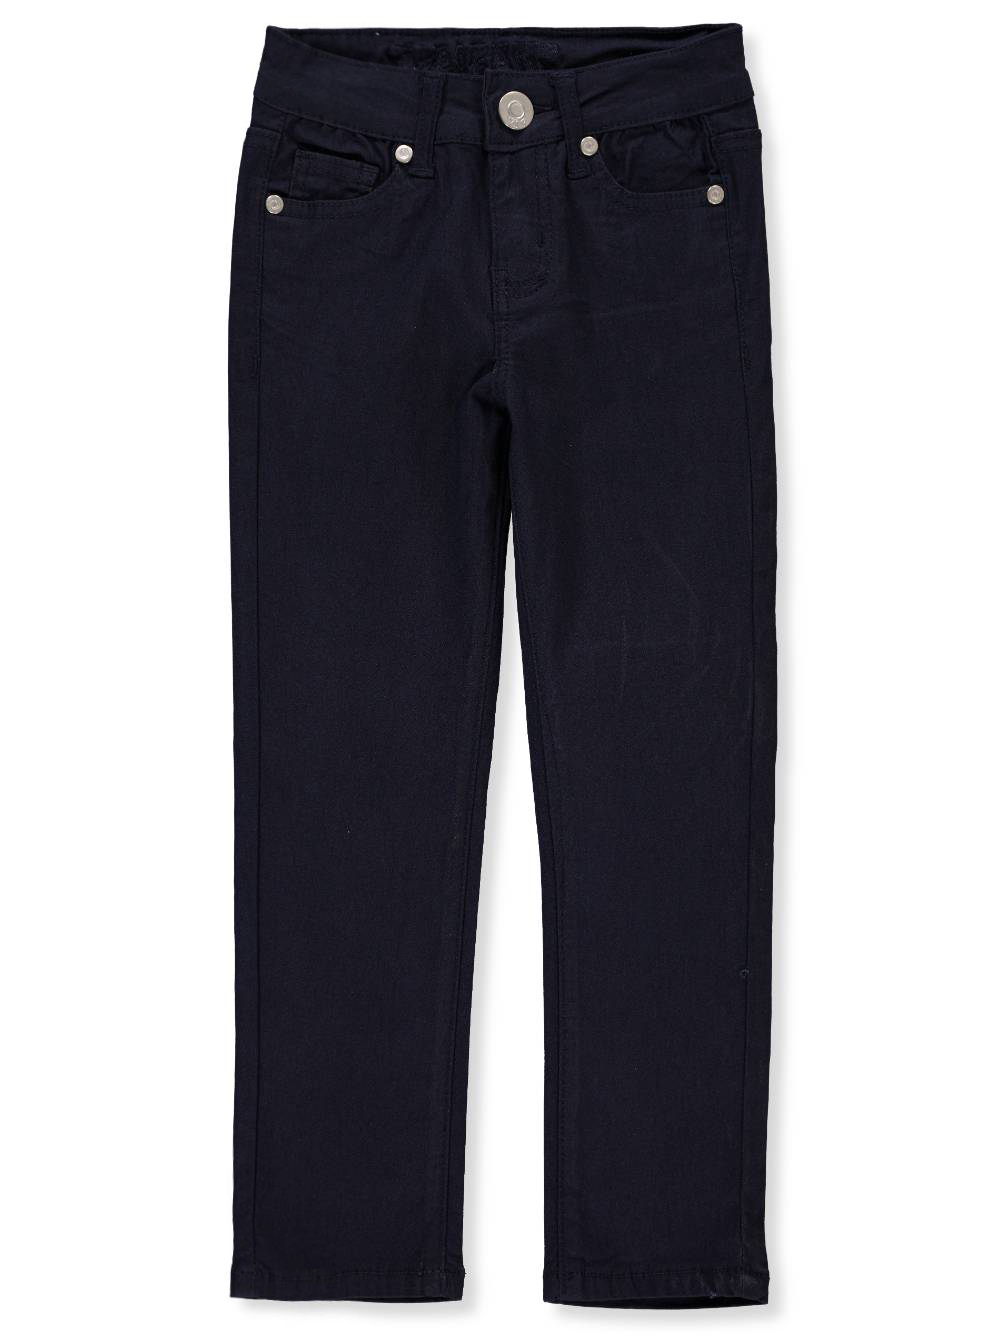 VIP Jeans Girls' Skinny Jeans